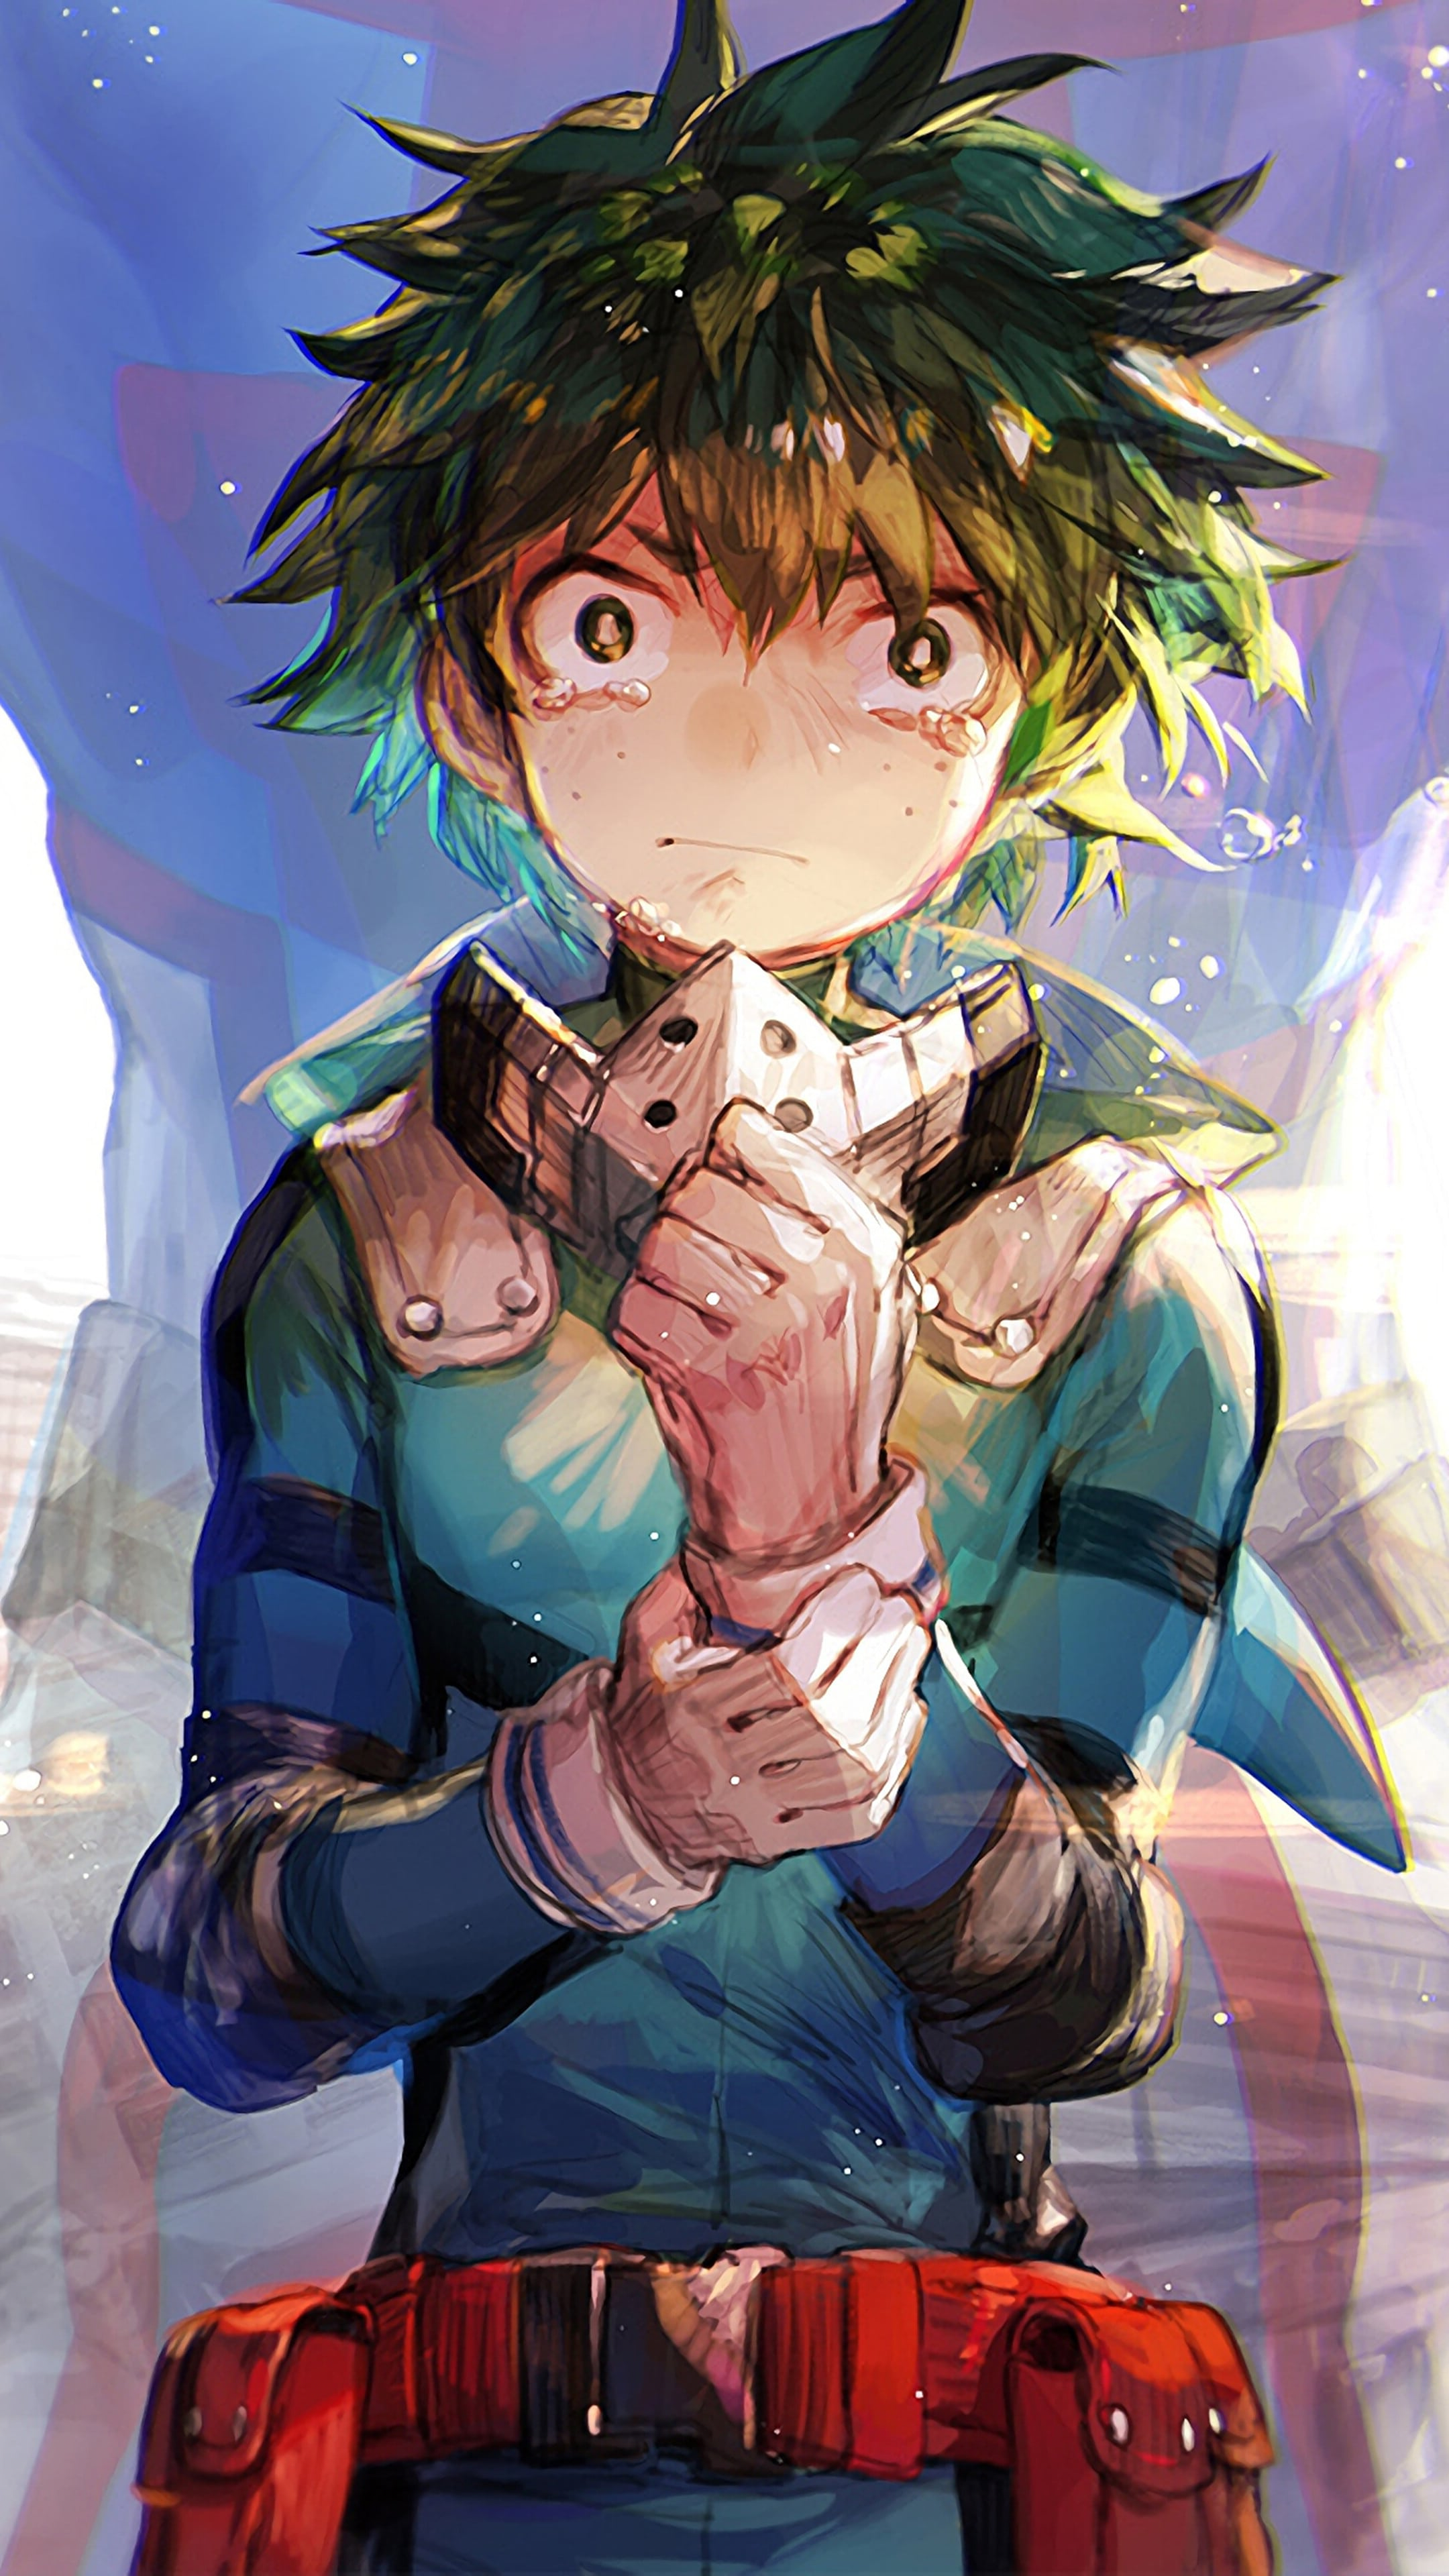 Deku Wallpaper Kolpaper Awesome Free Hd Wallpapers Follow the vibe and change your wallpaper every day! deku wallpaper kolpaper awesome